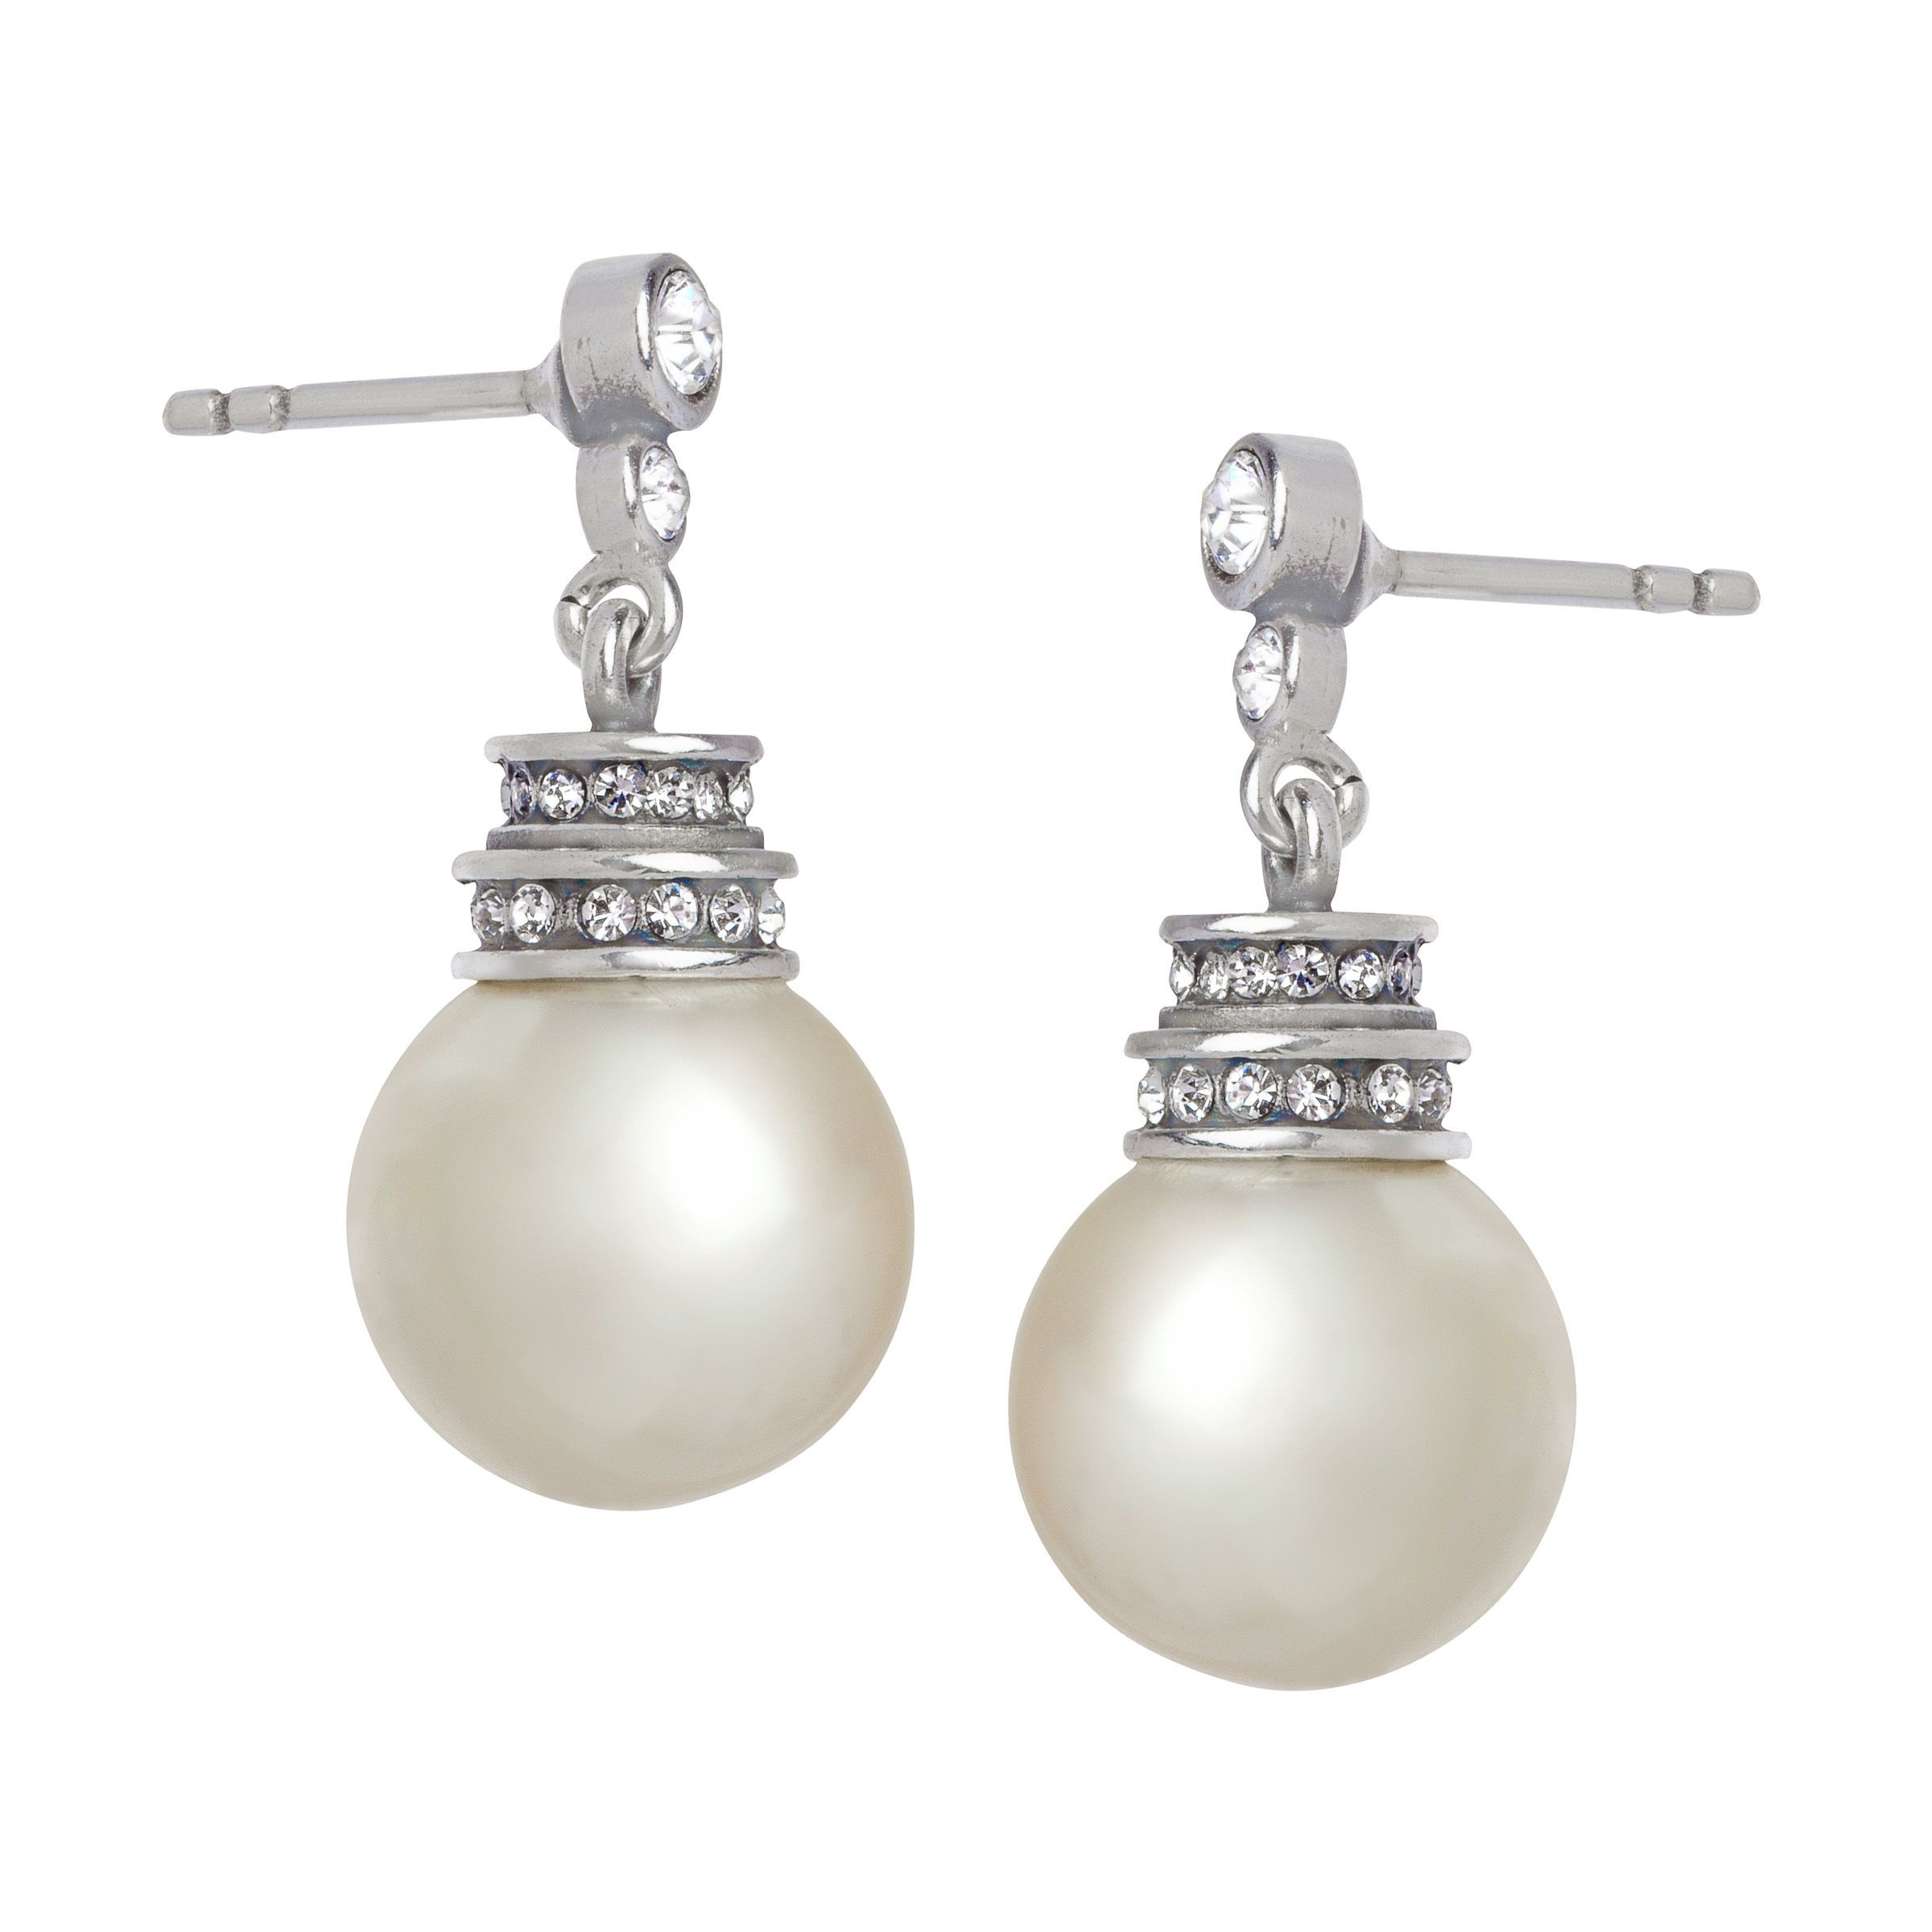 Van Kempen Art Deco Simulated Pearl Earrings With Swarovski Crystals In Silver